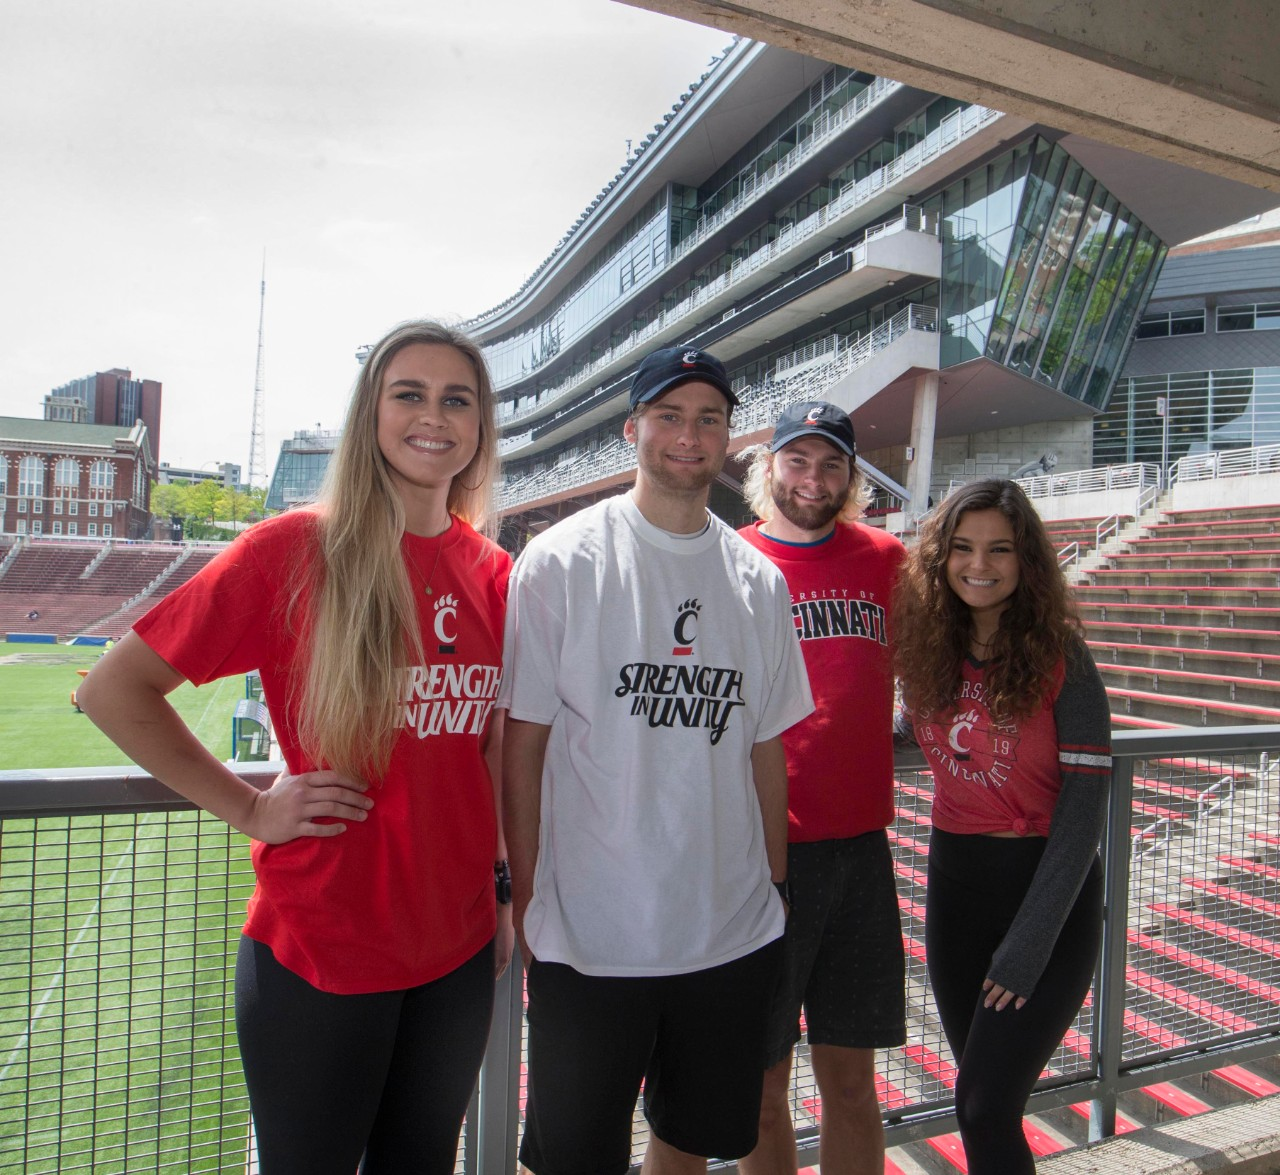 Two female and two male students stand in front of the press box at Nippert Stadium.